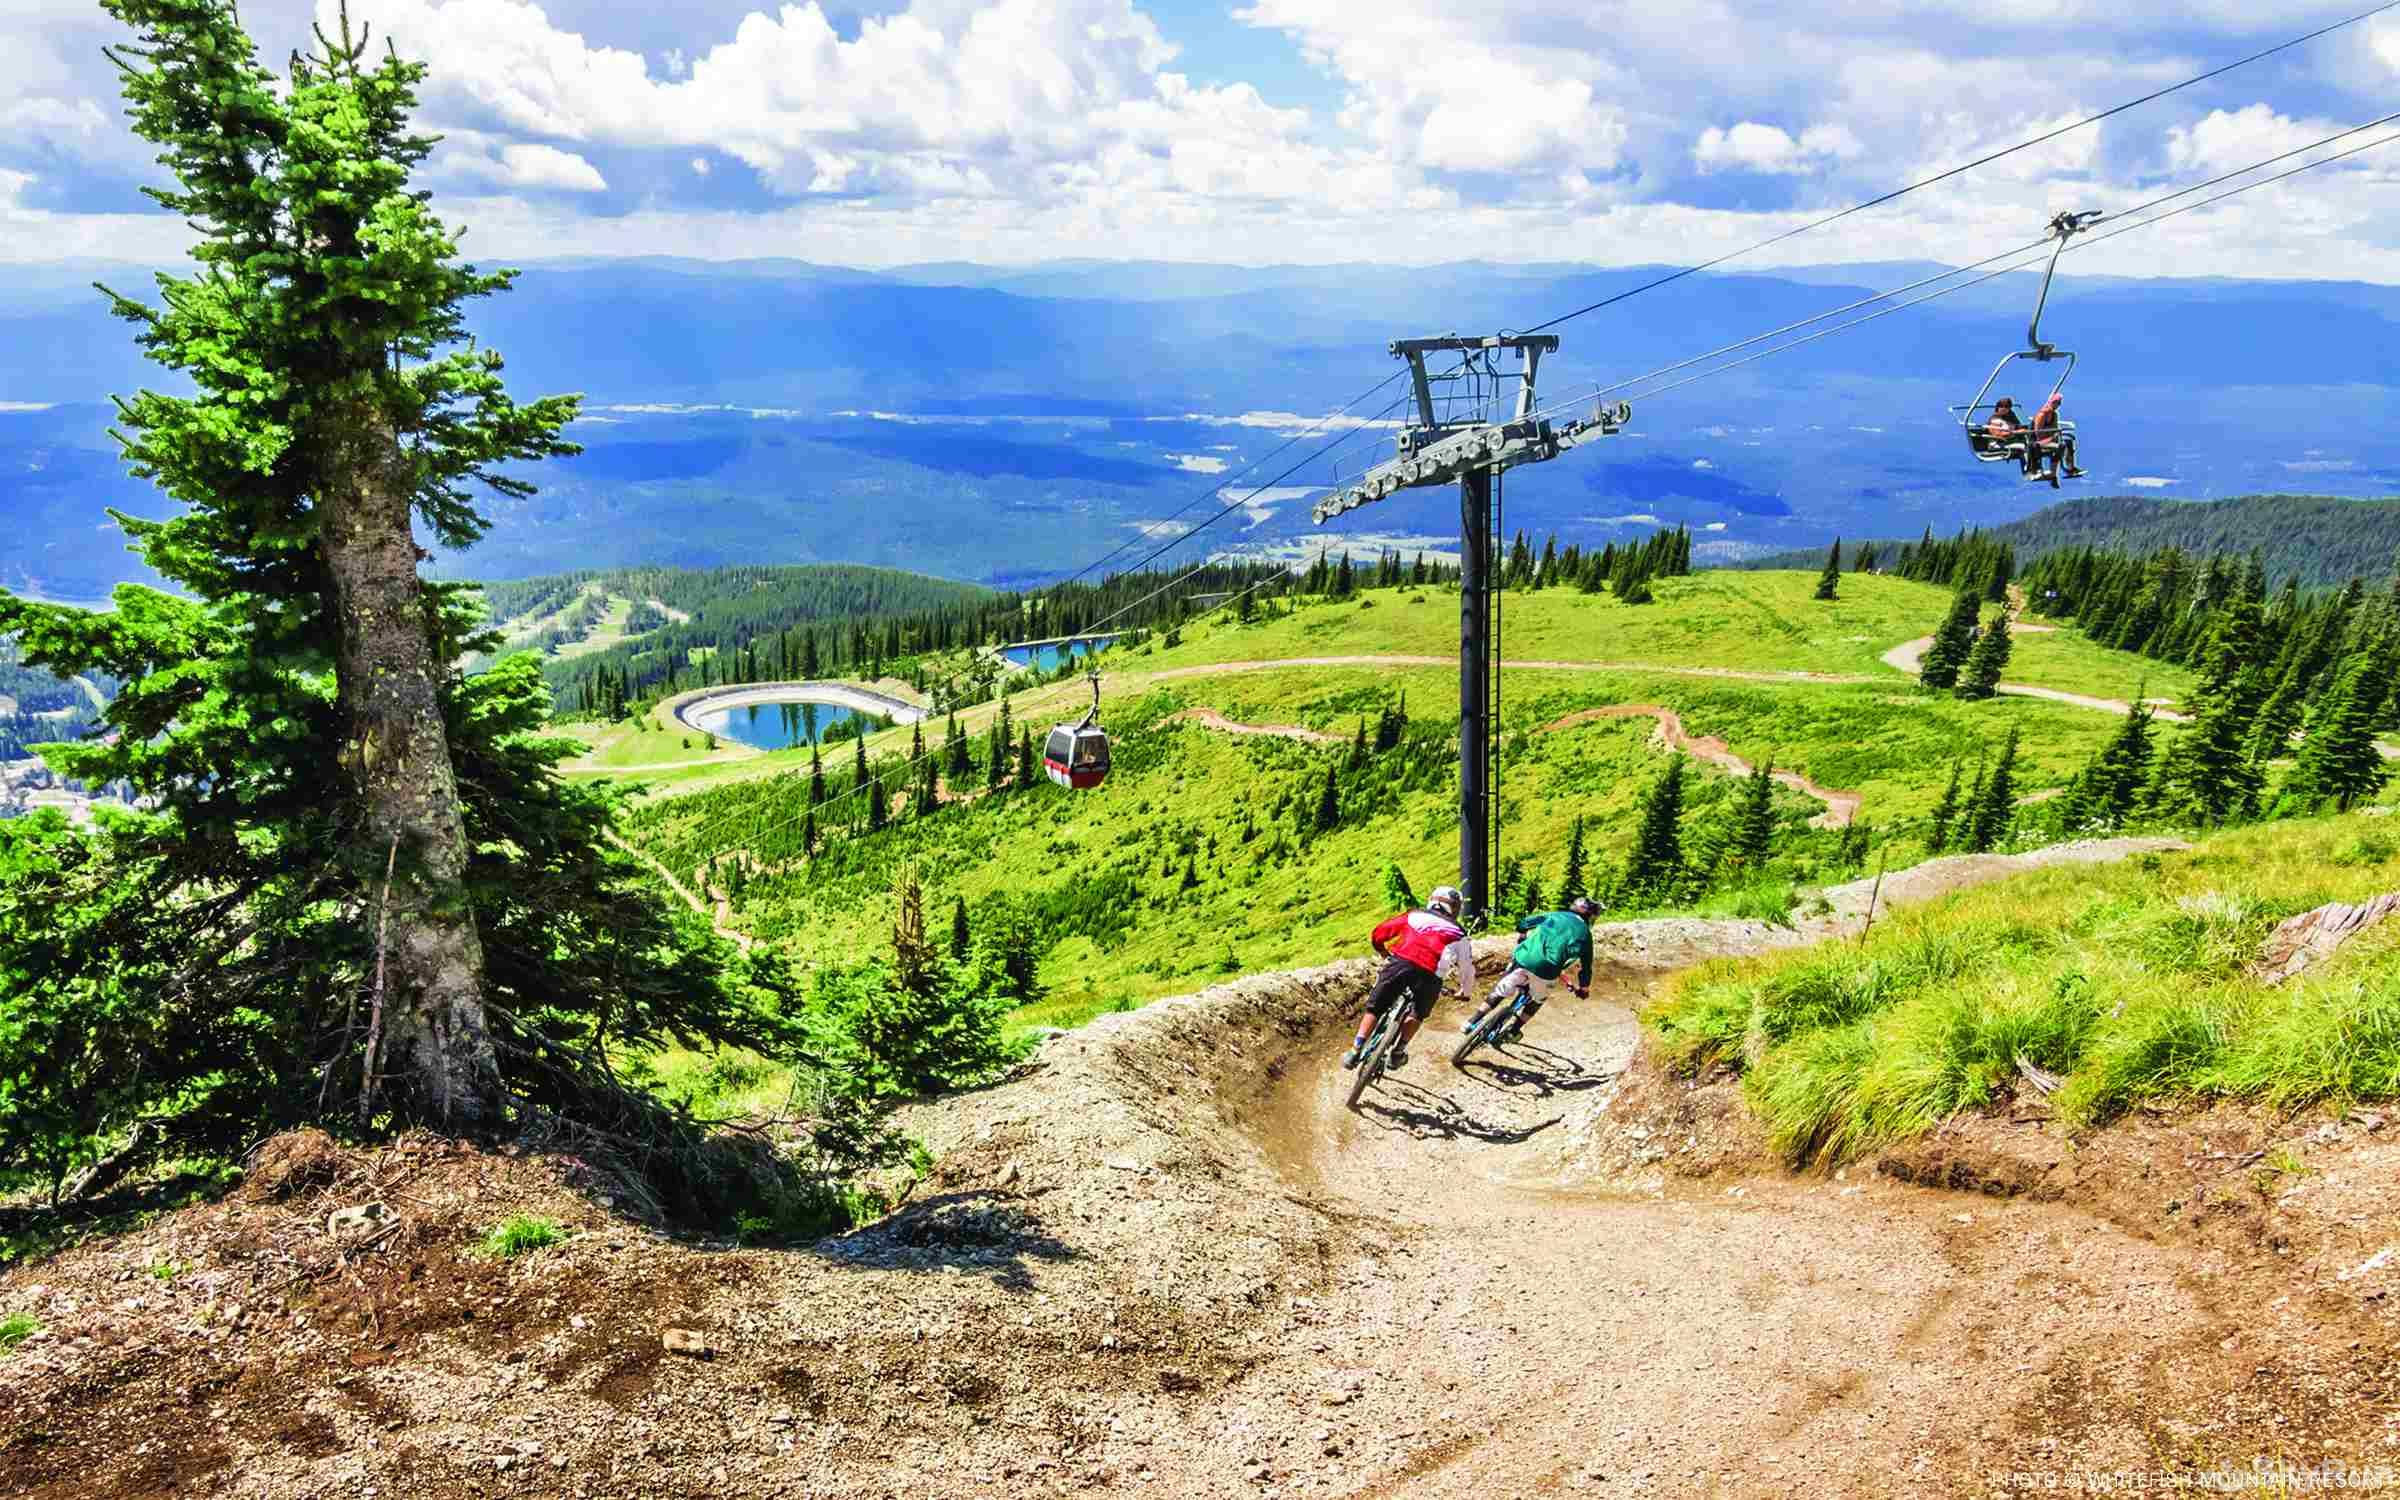 Highland Huckleberry Lodge Did you know that Whitefish Mountain Resort has numerous fun summer activities including mountain biking, zip lines, and fun family activities?